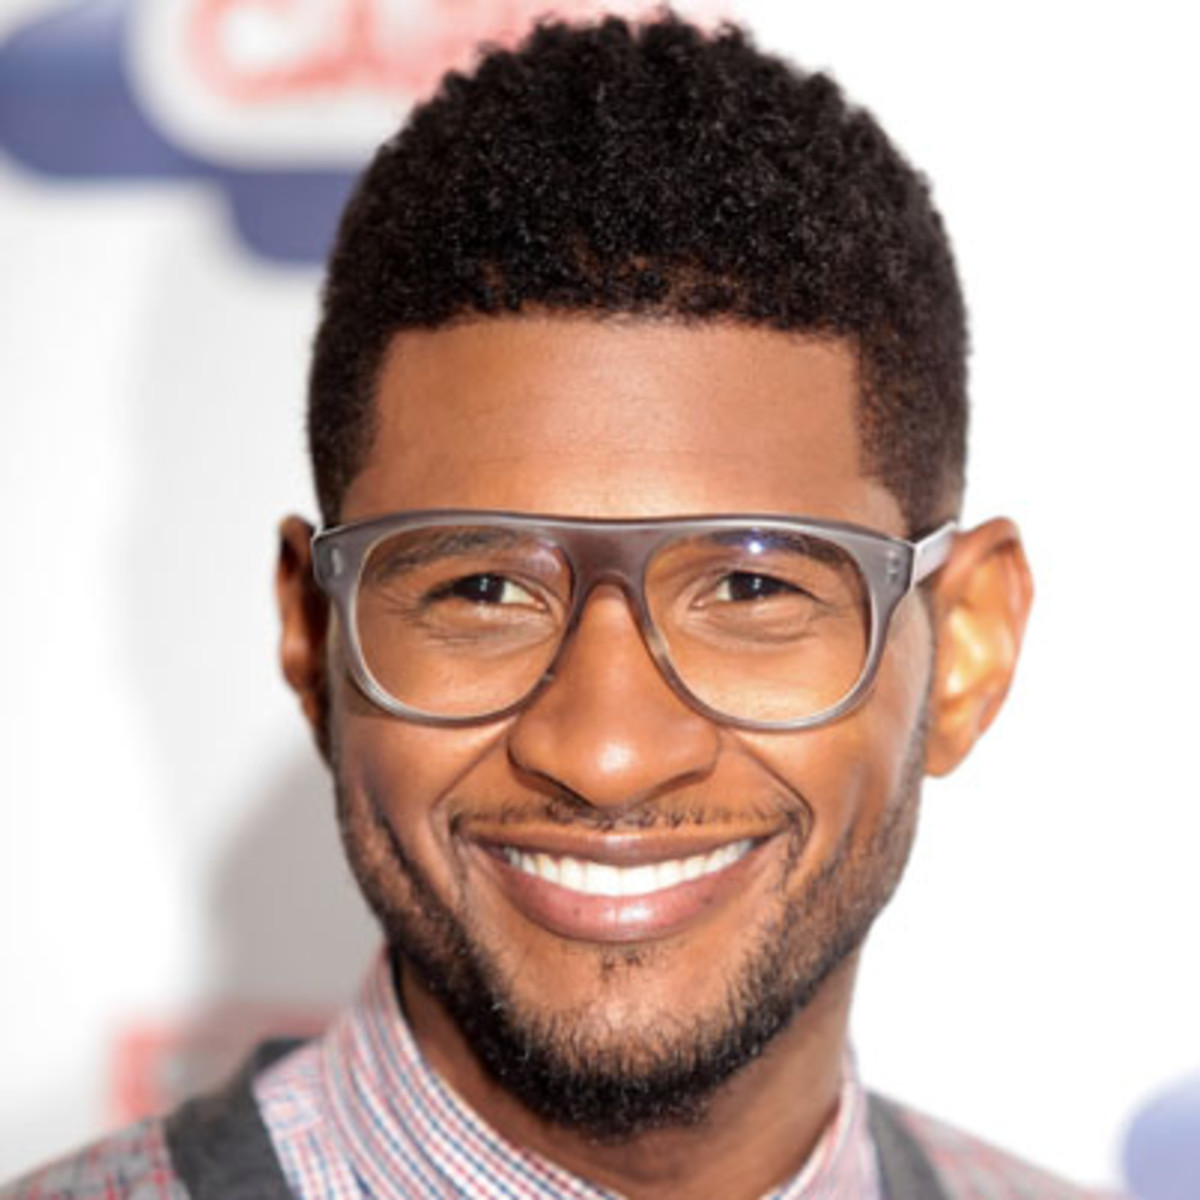 Usher - Singer - Biography